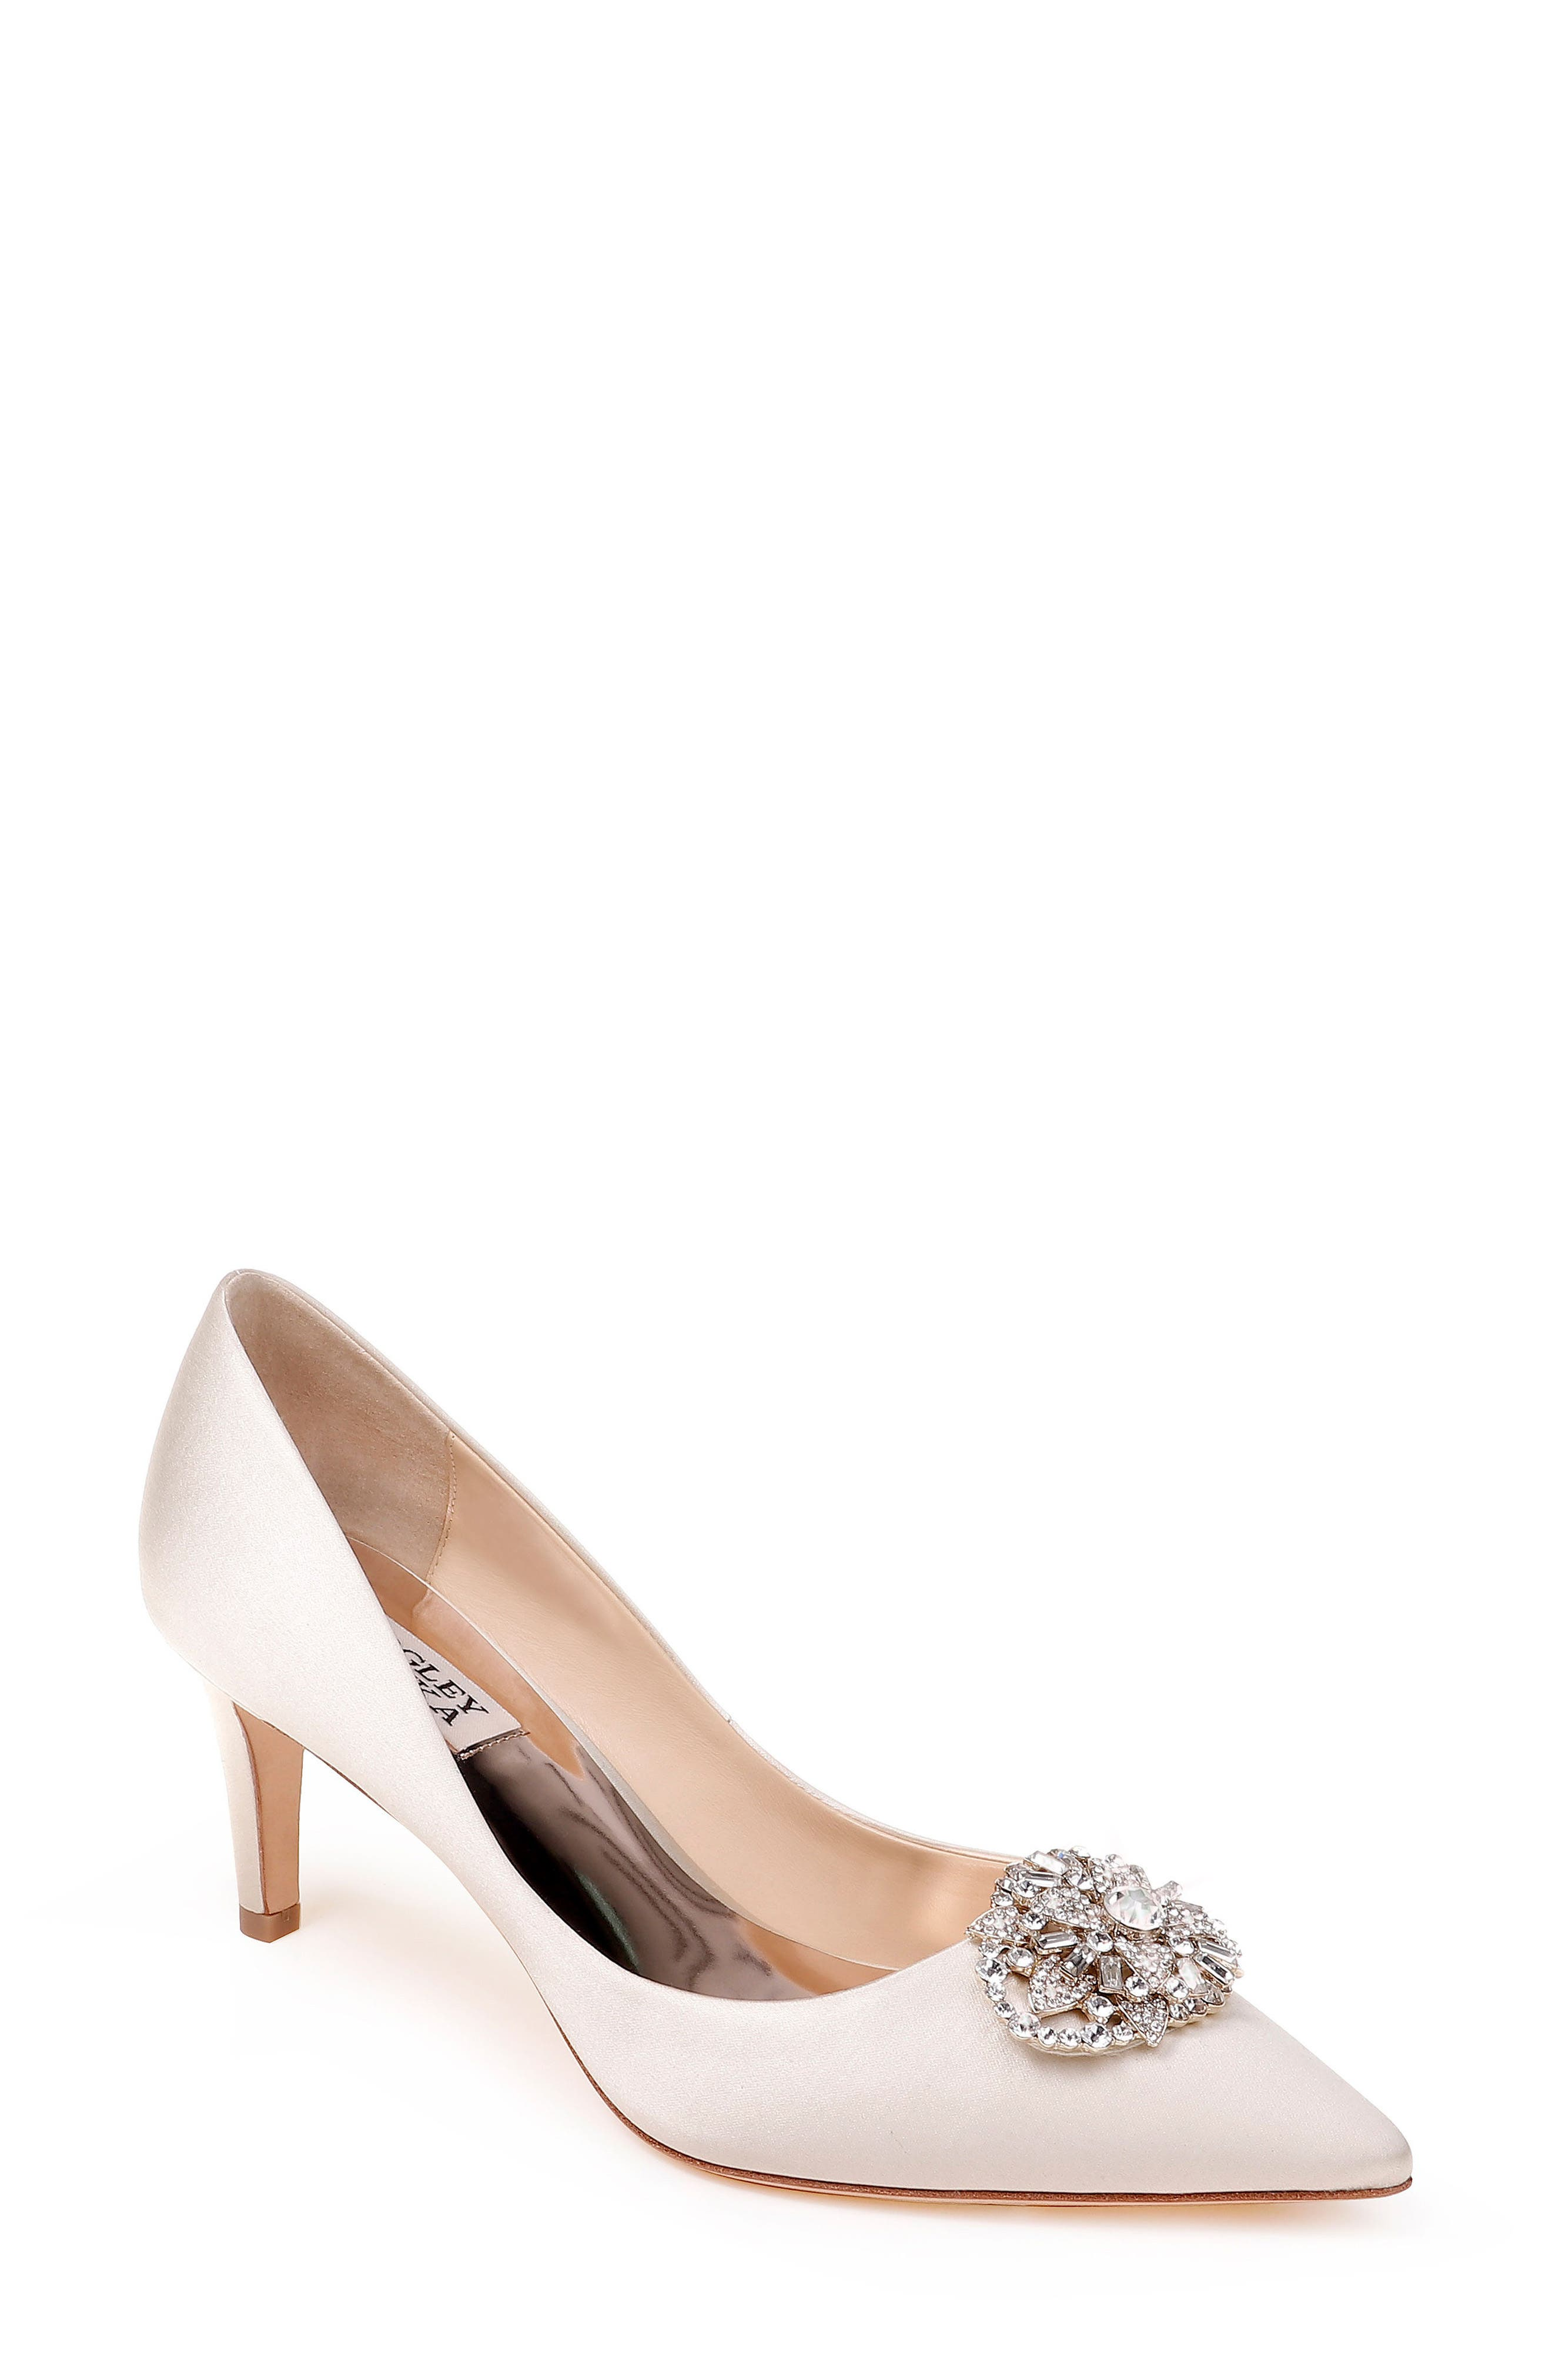 Sunshine Embellished Pump,                         Main,                         color, IVORY SATIN